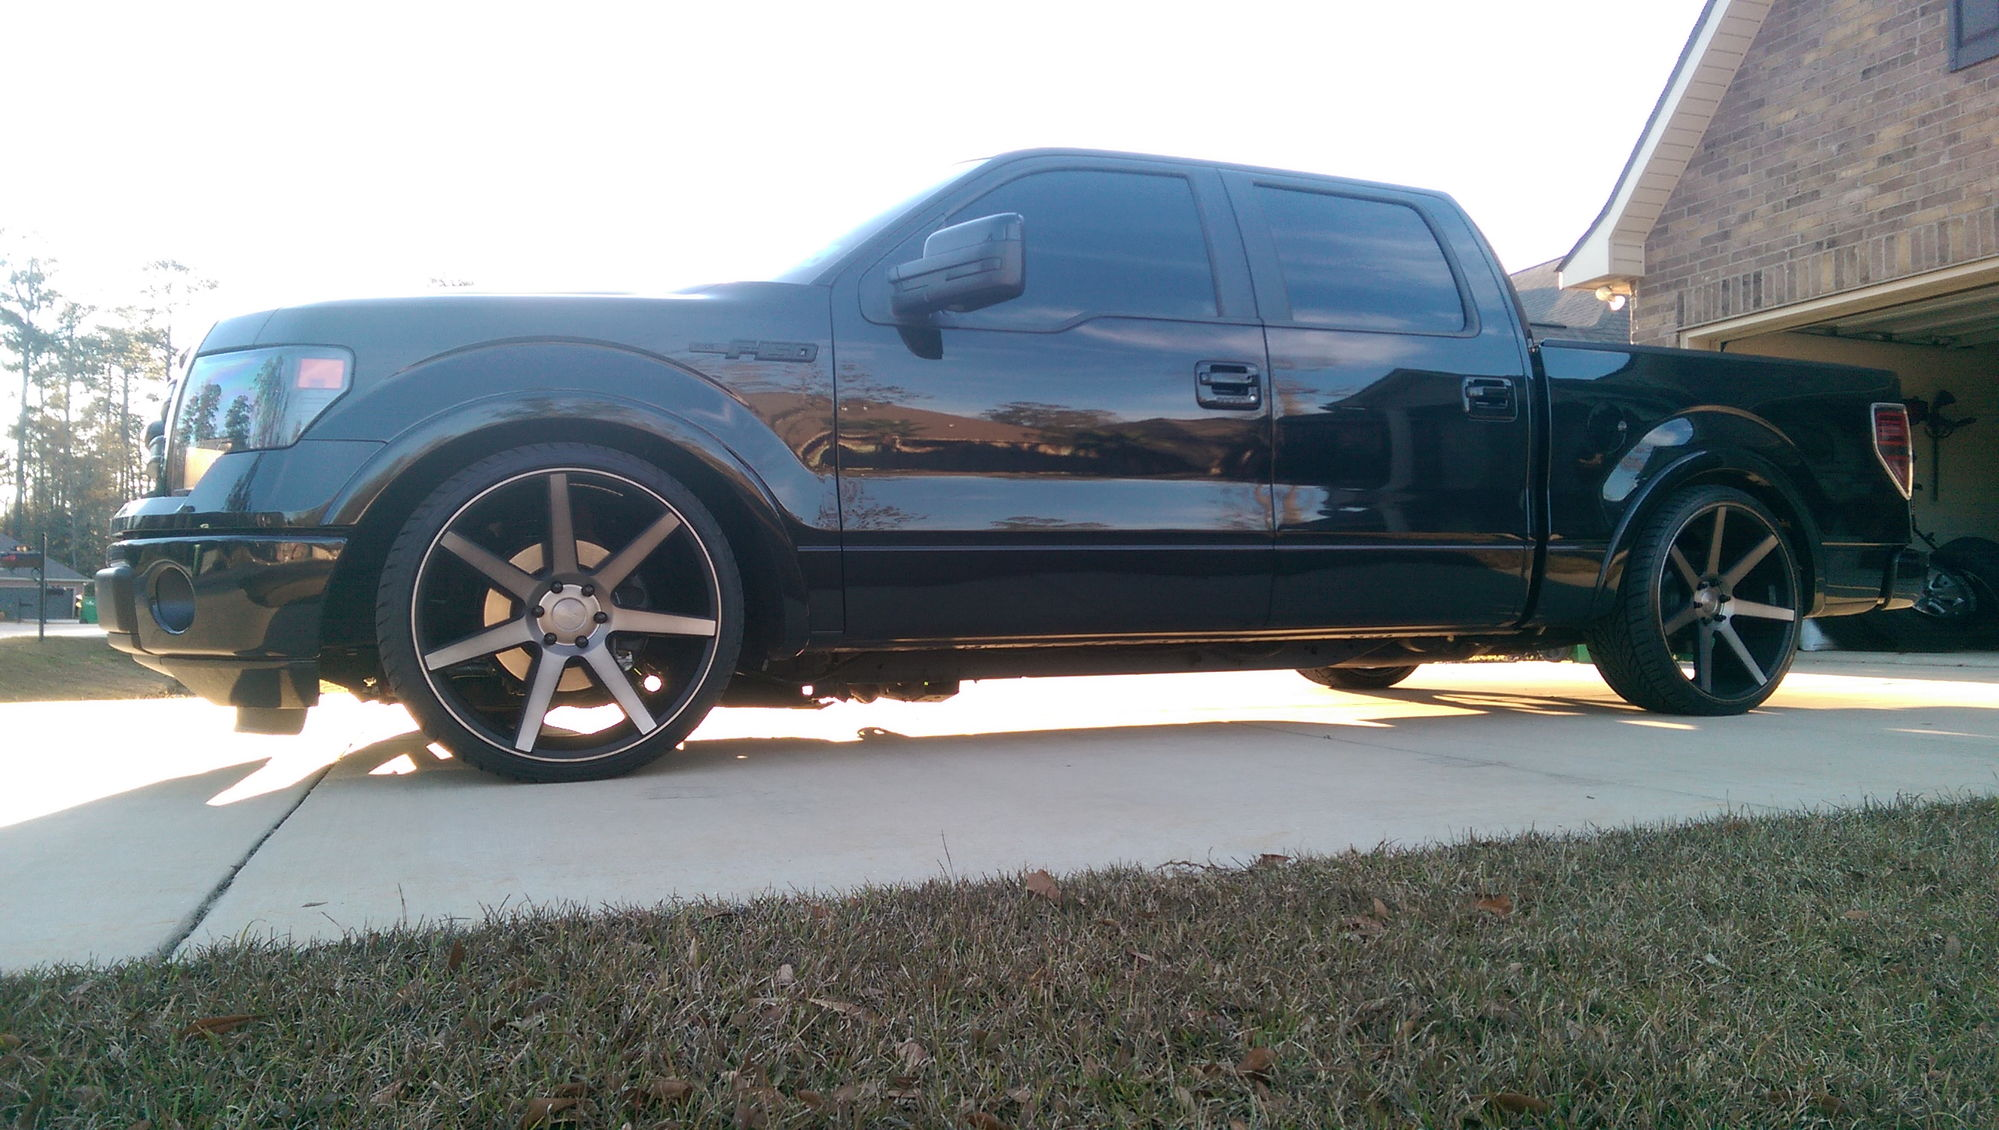 let's see some MORE lowered trucks!!!.... - Page 53 - Ford ...  let's see s...